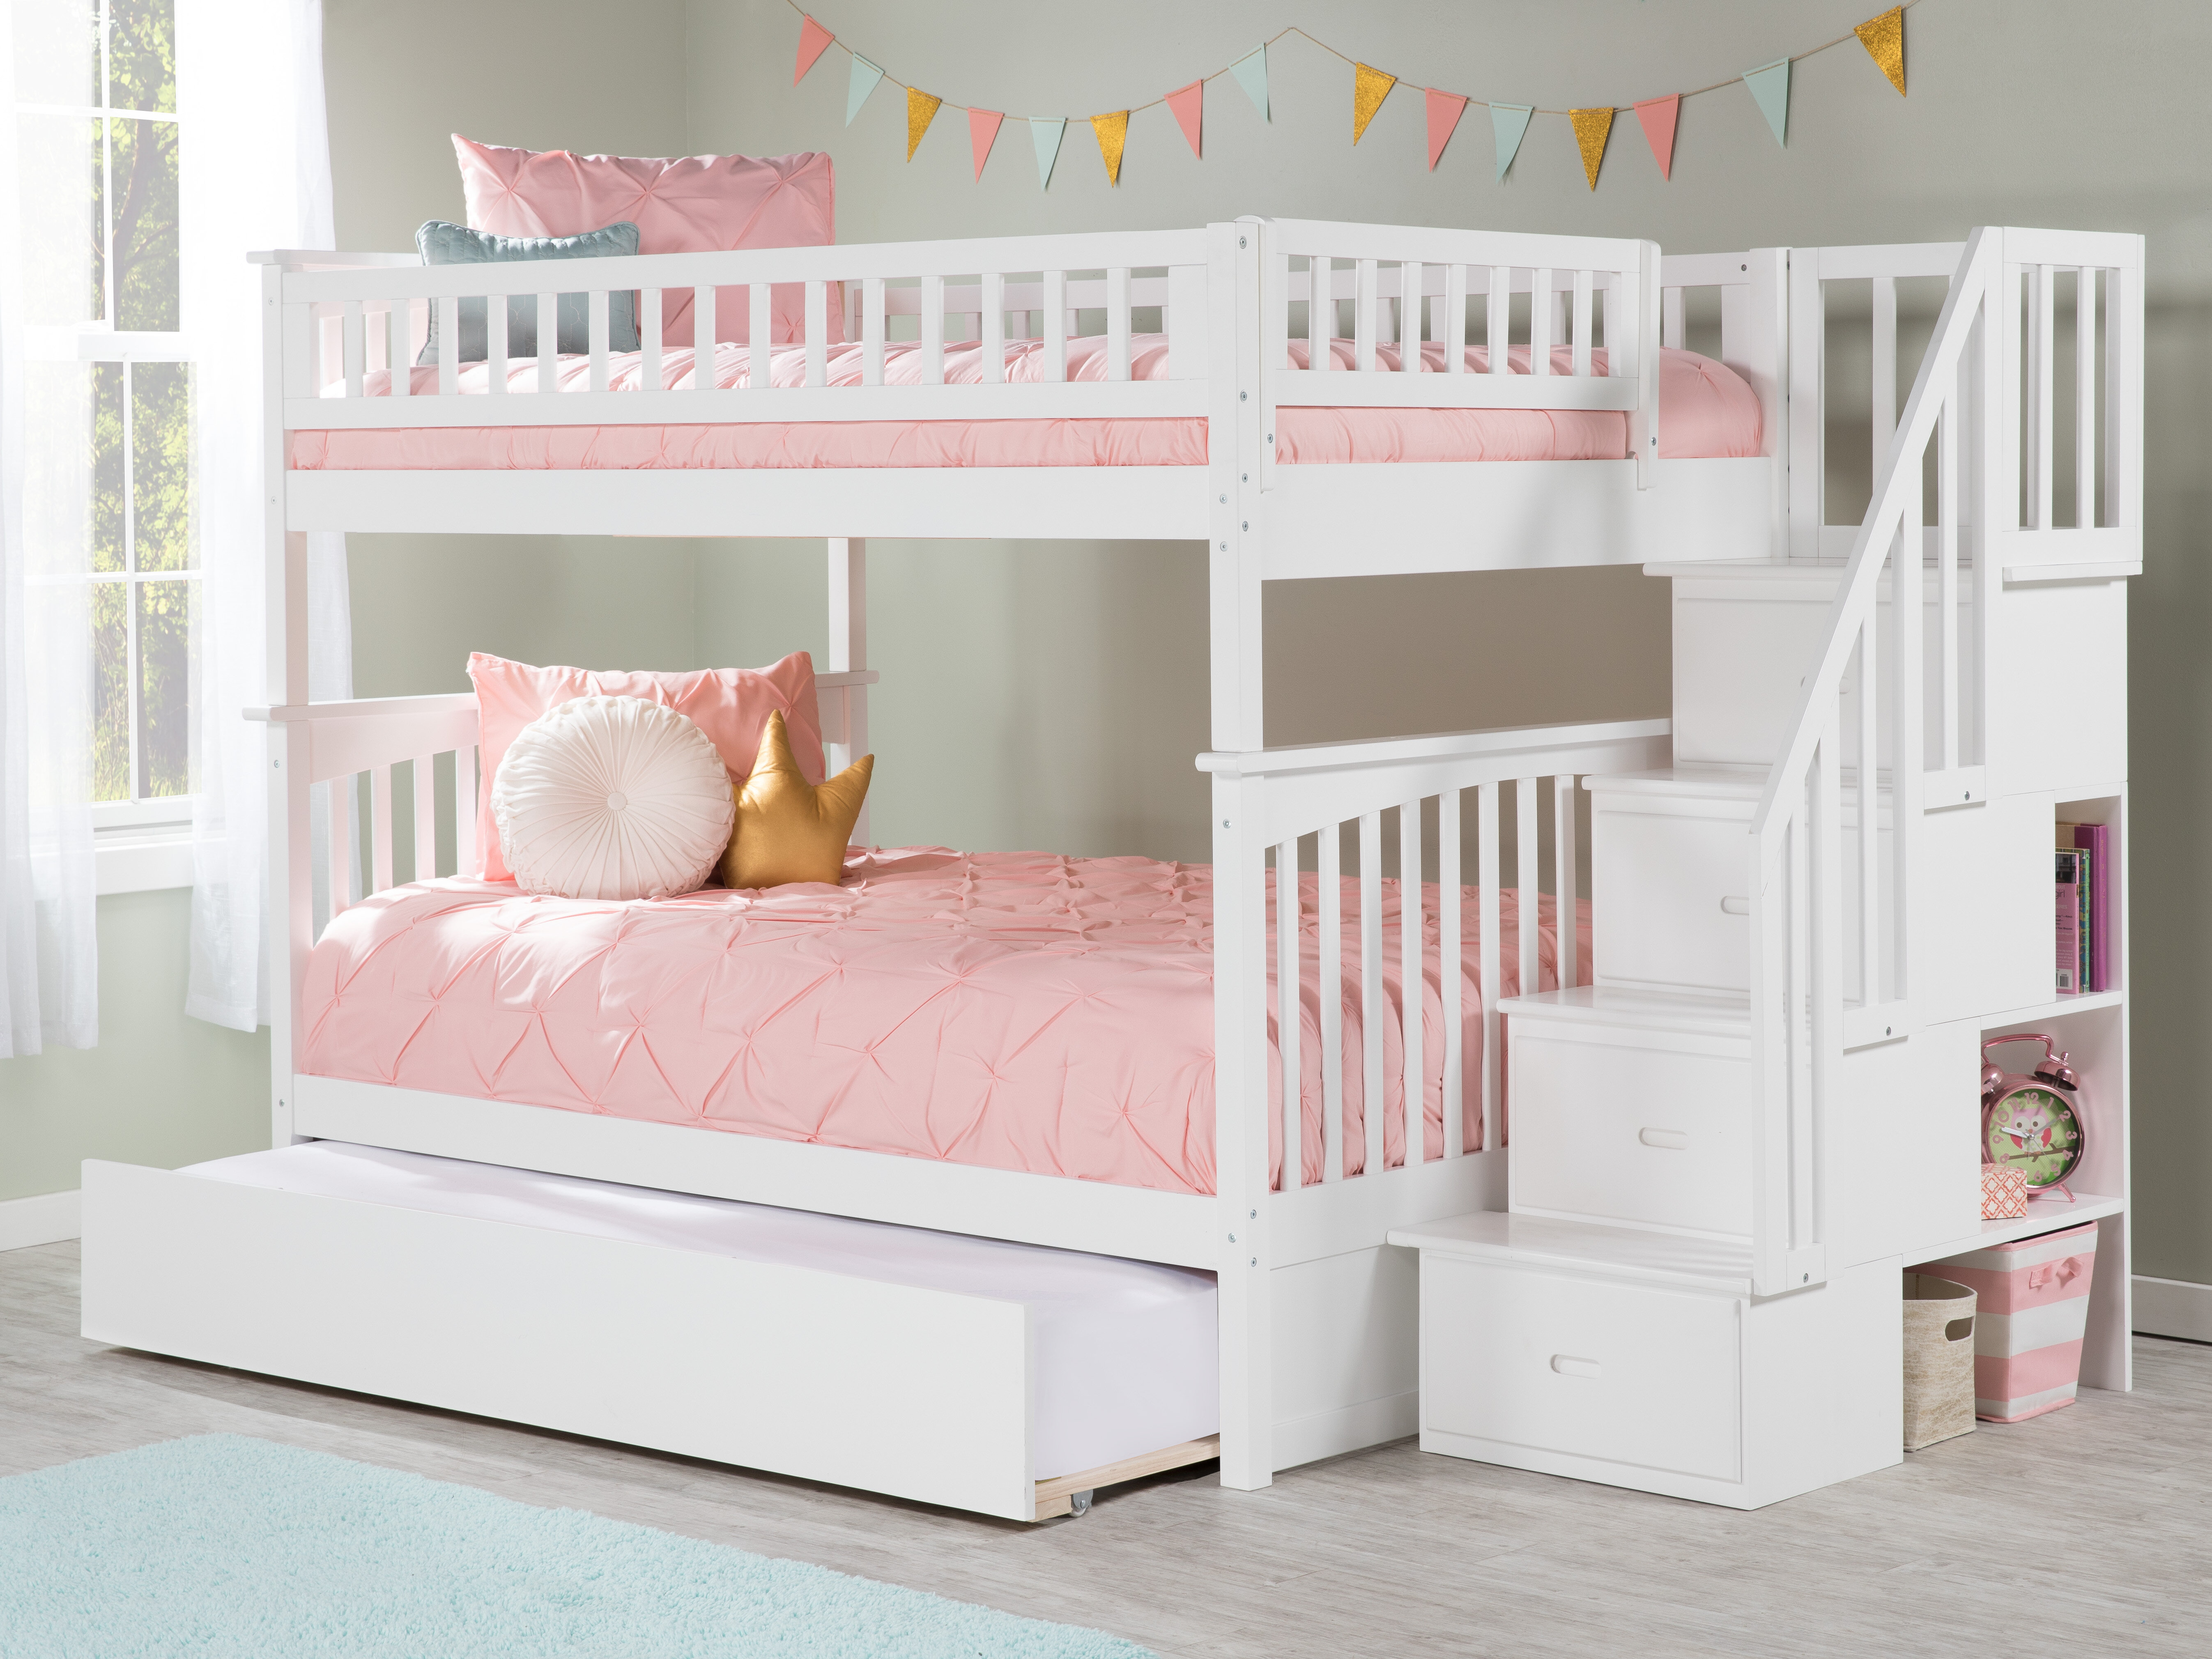 Full Over Full Bunk Beds You Ll Love In 2021 Wayfair